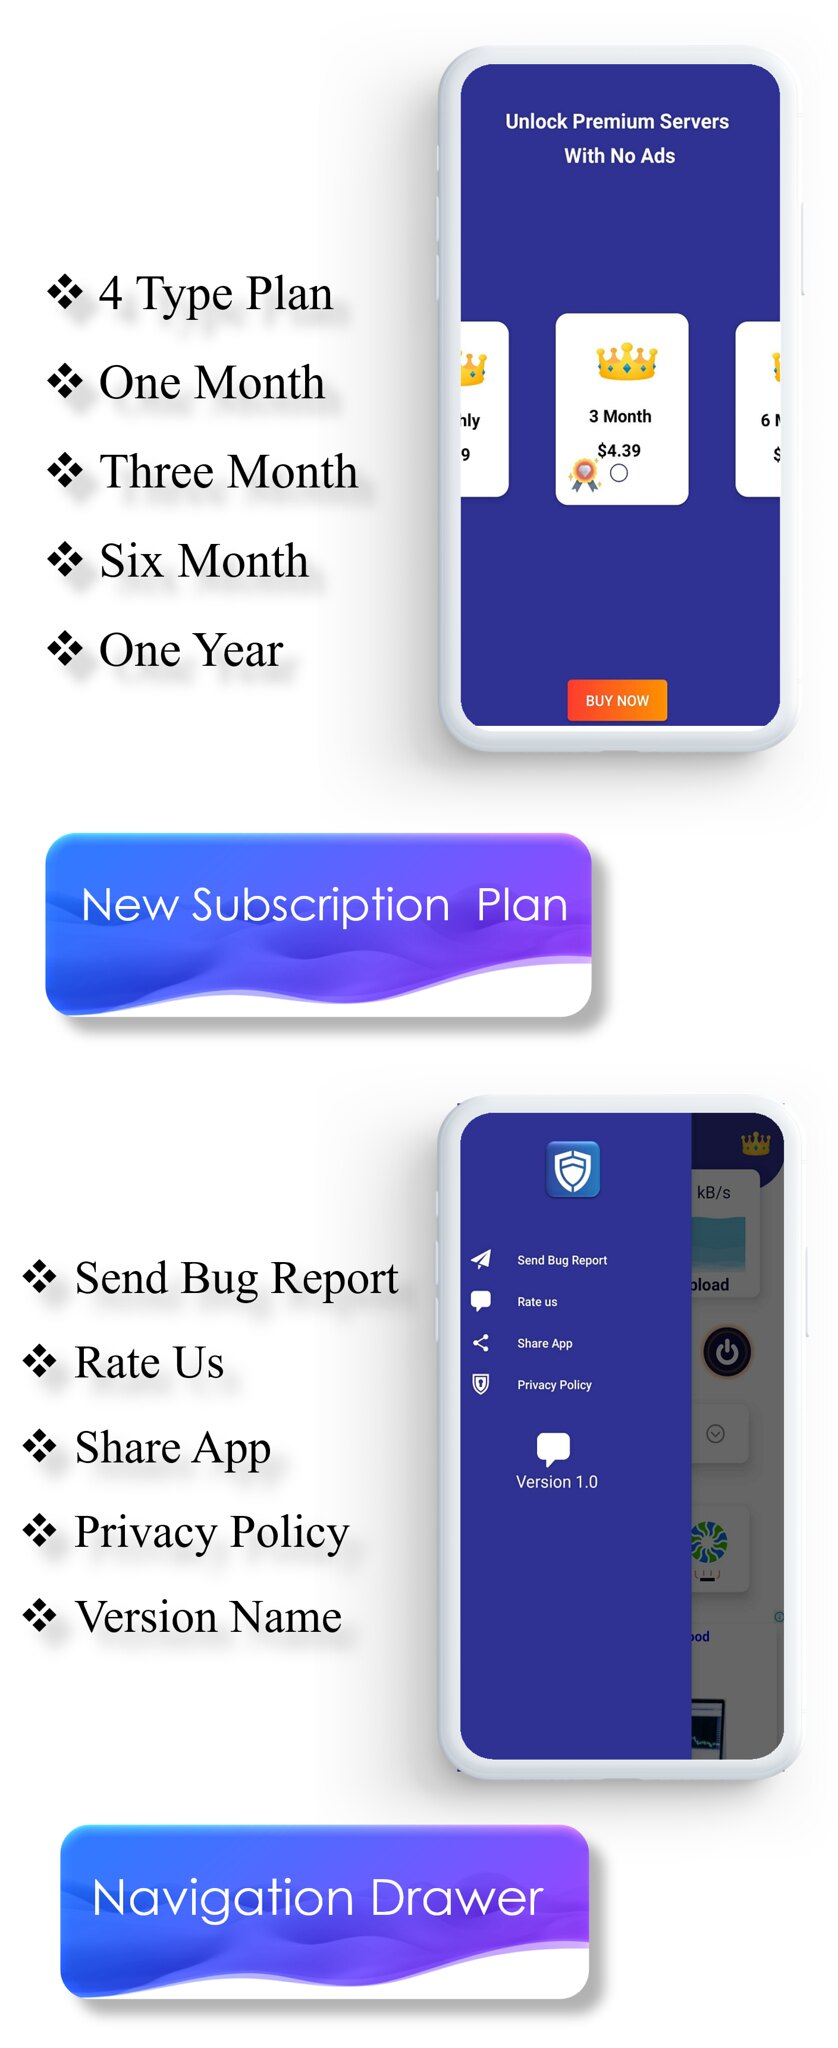 TOTO - VPN | VPN App | Facebook Ads | Admob Ads | Ads Manage Remotely | VPN  | VPN Subscription Plan - 7